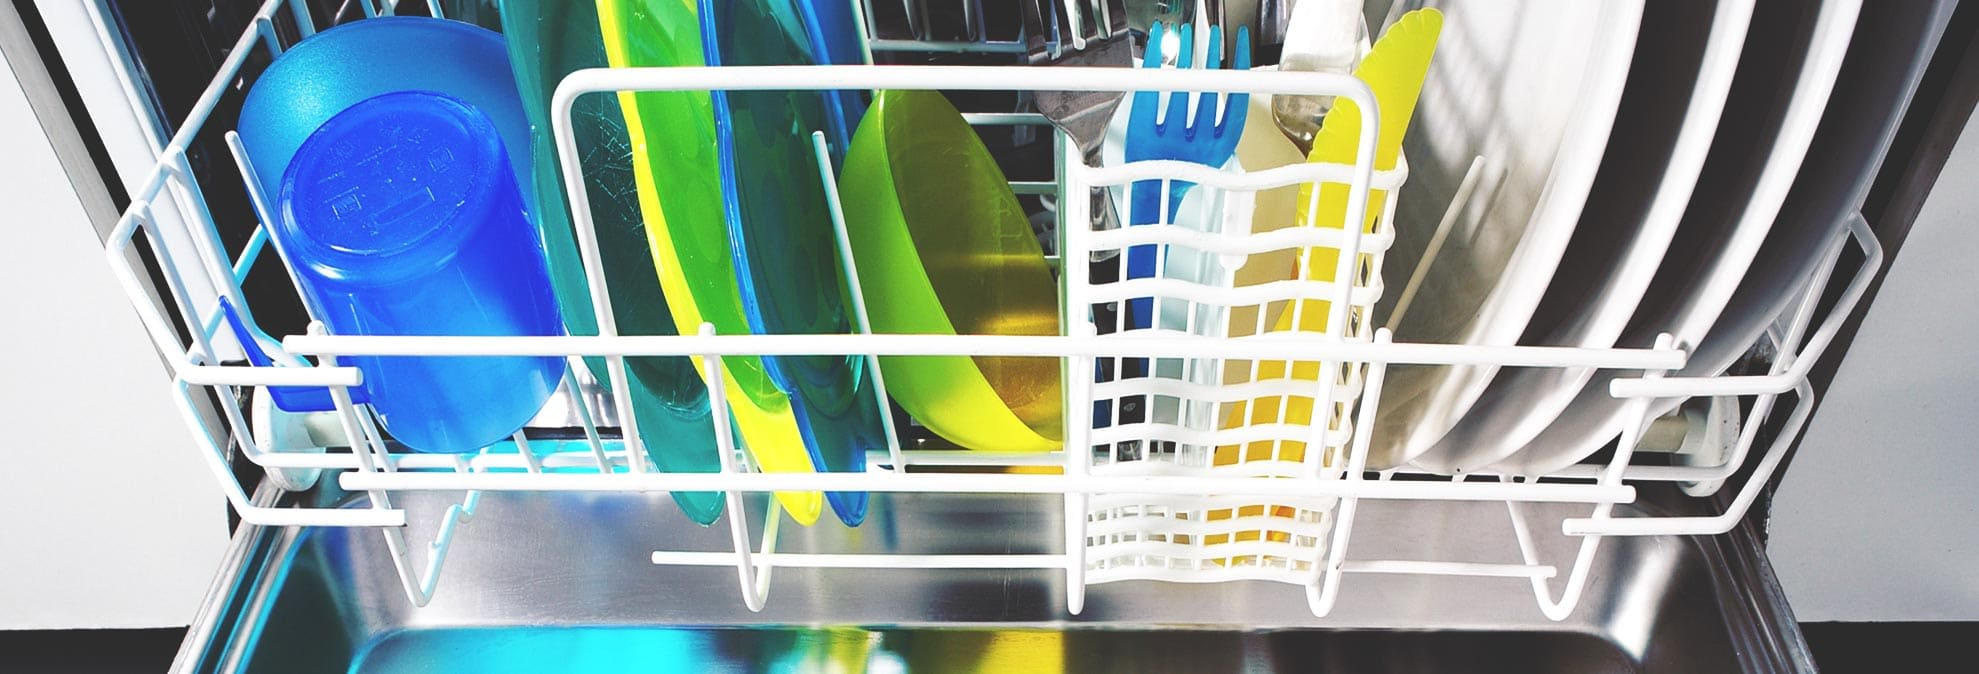 Things You Should Never Put in a Dishwasher - Consumer Reports